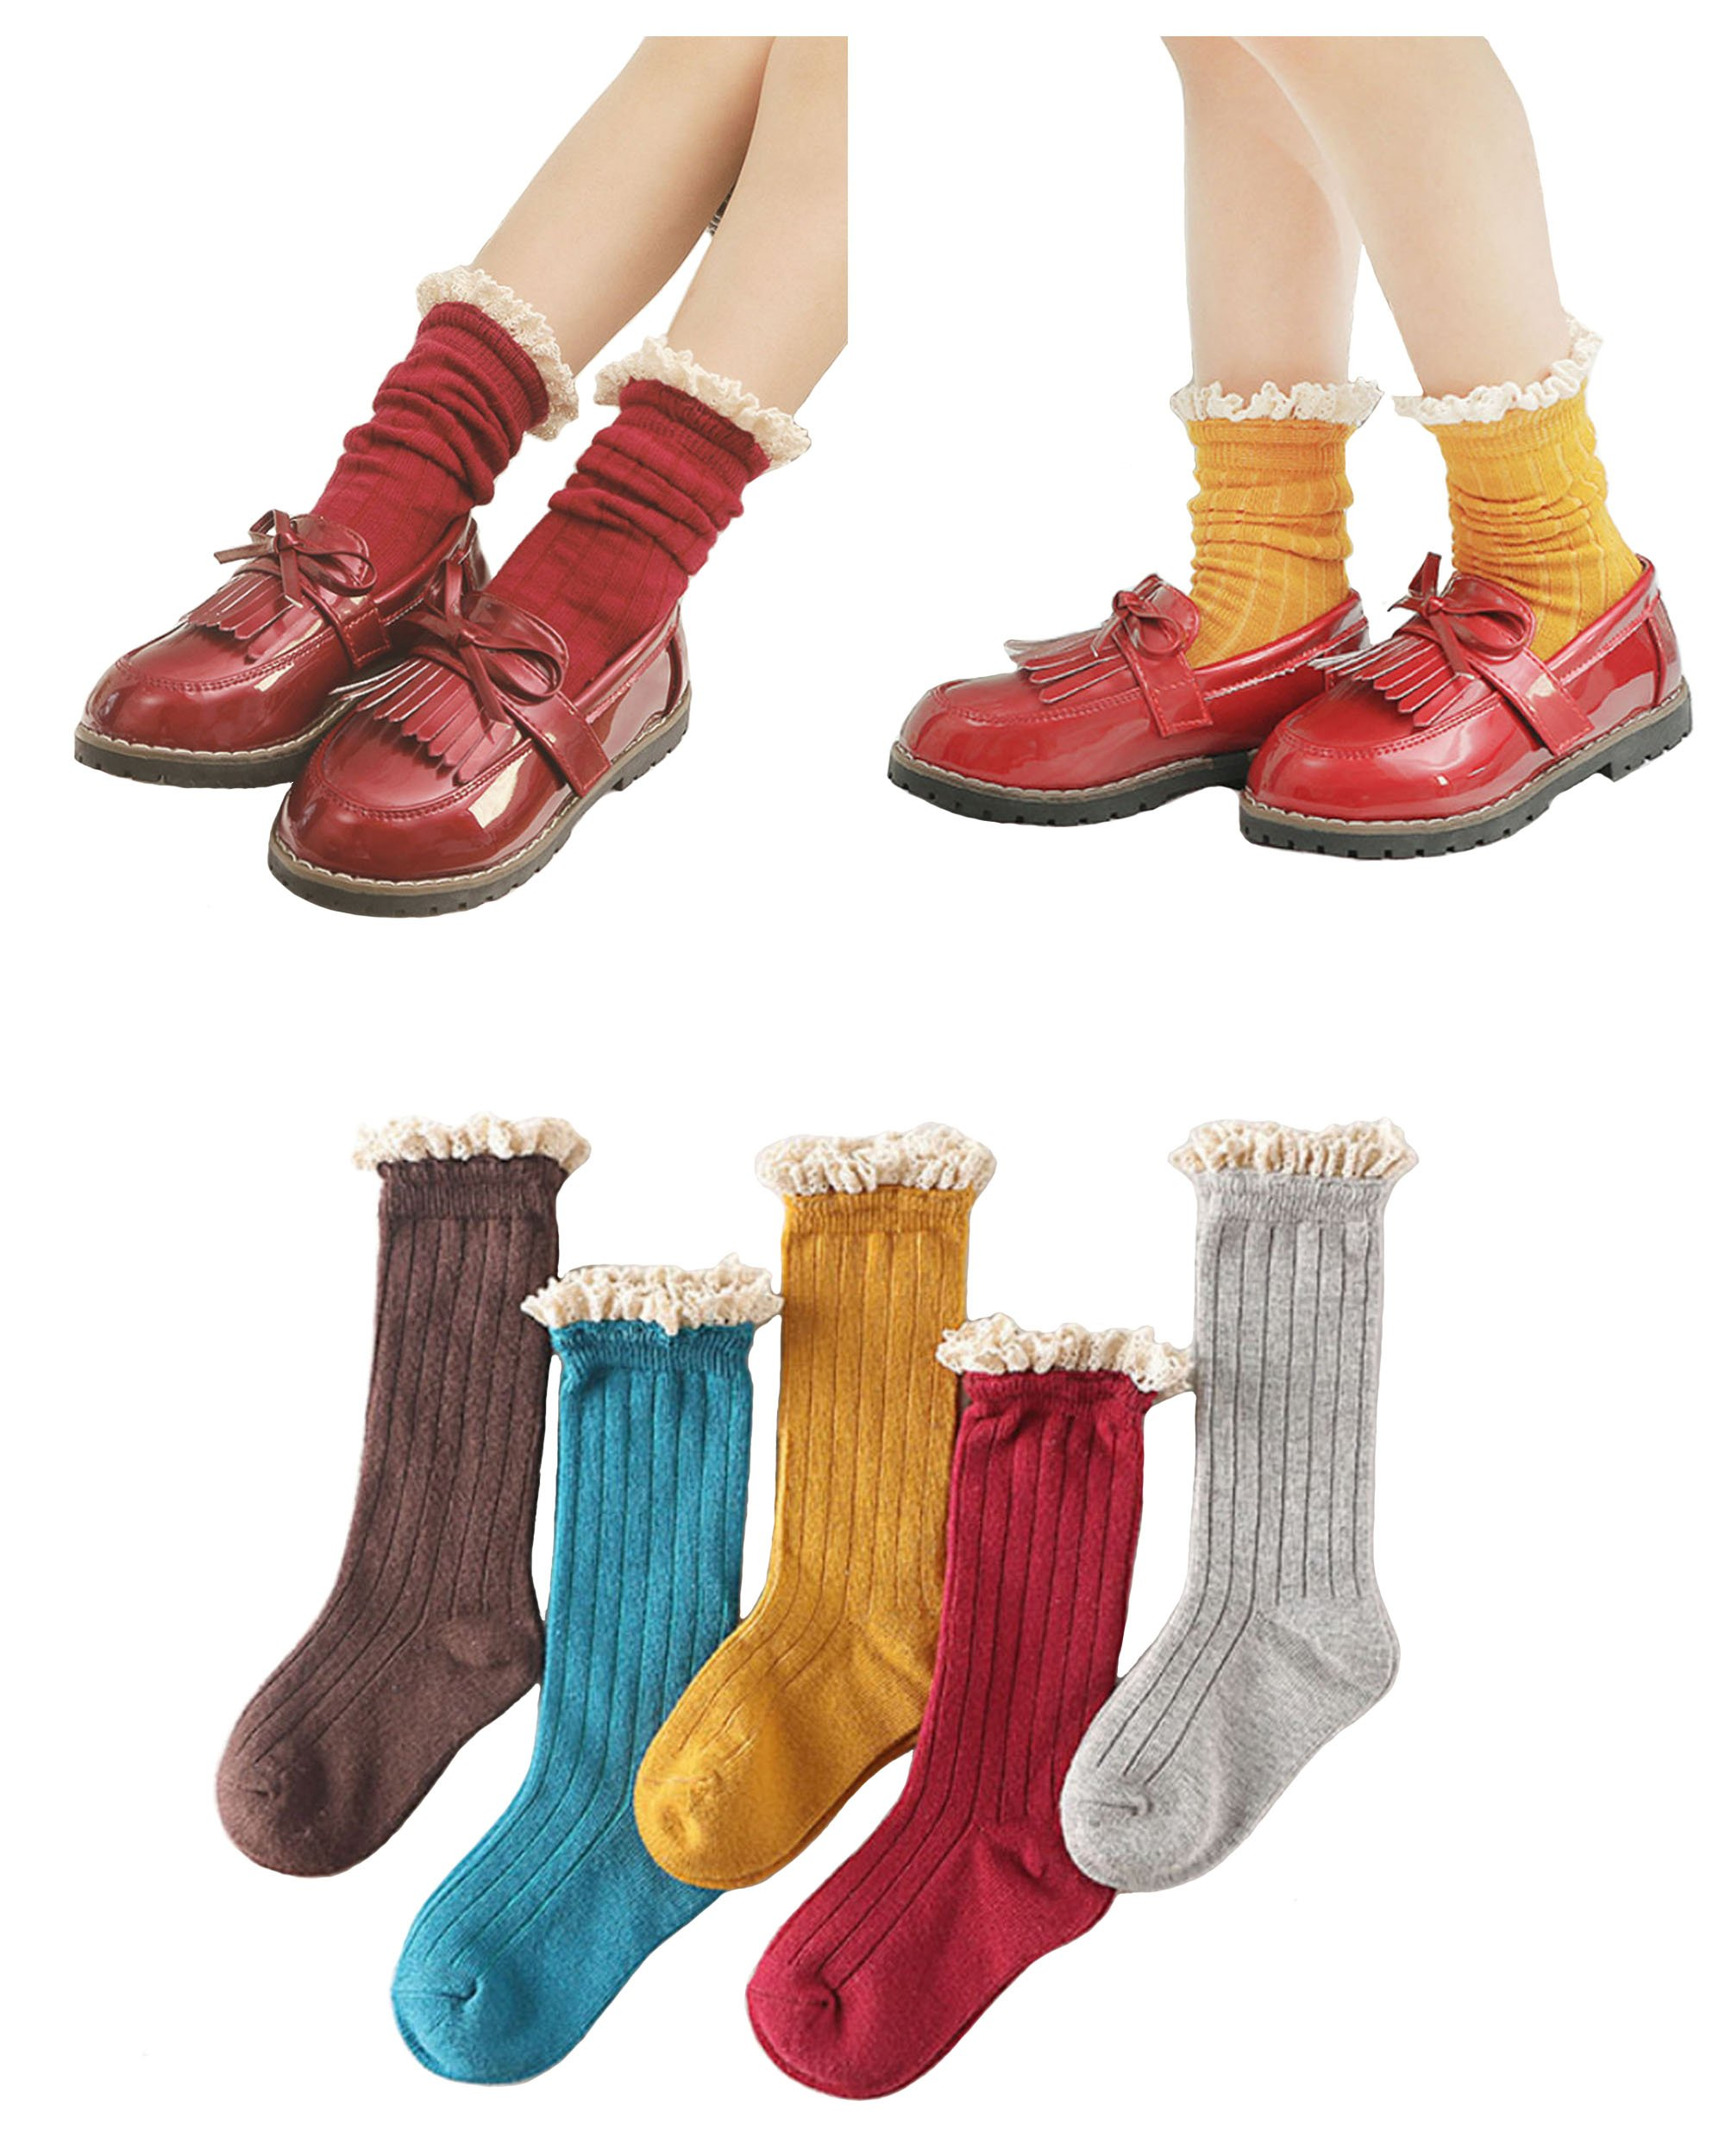 5 Pack Girls Sweet Socks Lace Trim Cotton Knit Footed Leg Boot Stocking By Eilin (9-12 years)